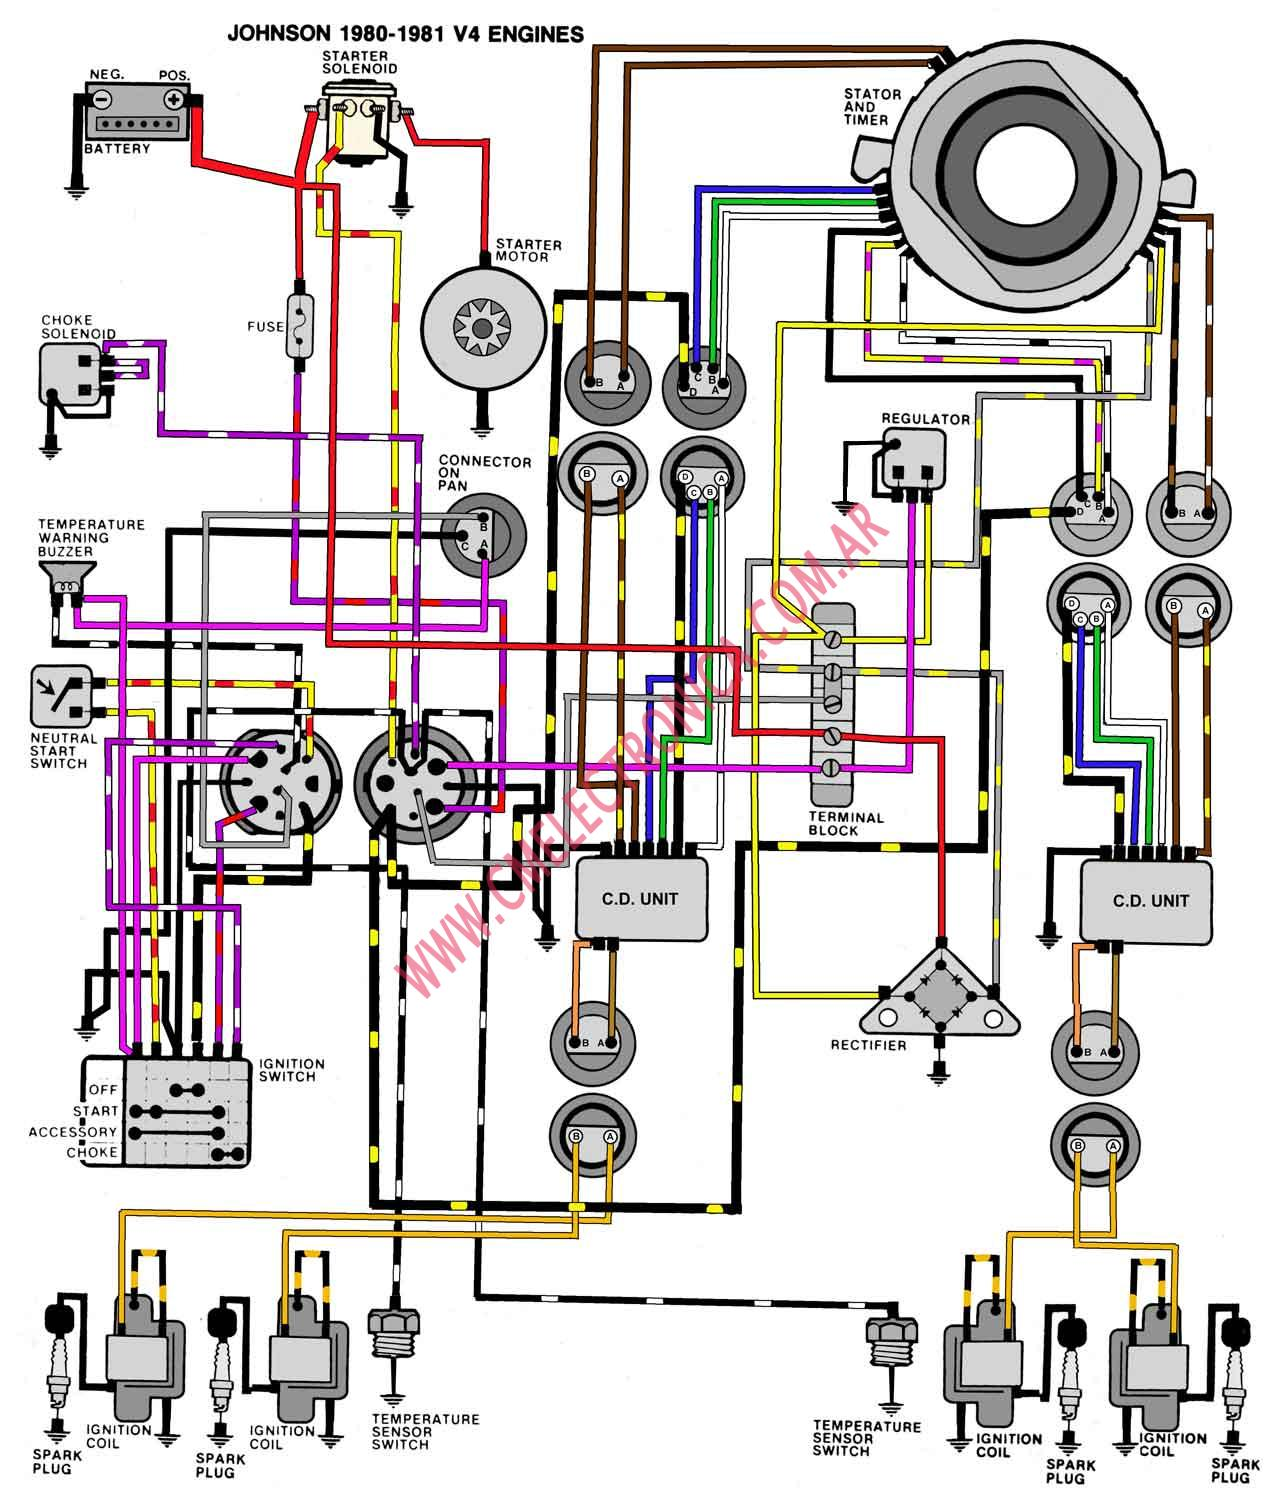 70 hp evinrude wiring diagram 6 qivoorho welldonesupplies info \u2022 chrysler engine diagrams 75 hp chrysler outboard wiring diagram wiring diagram rh c49 mikroflex de 1974 evinrude 70 hp